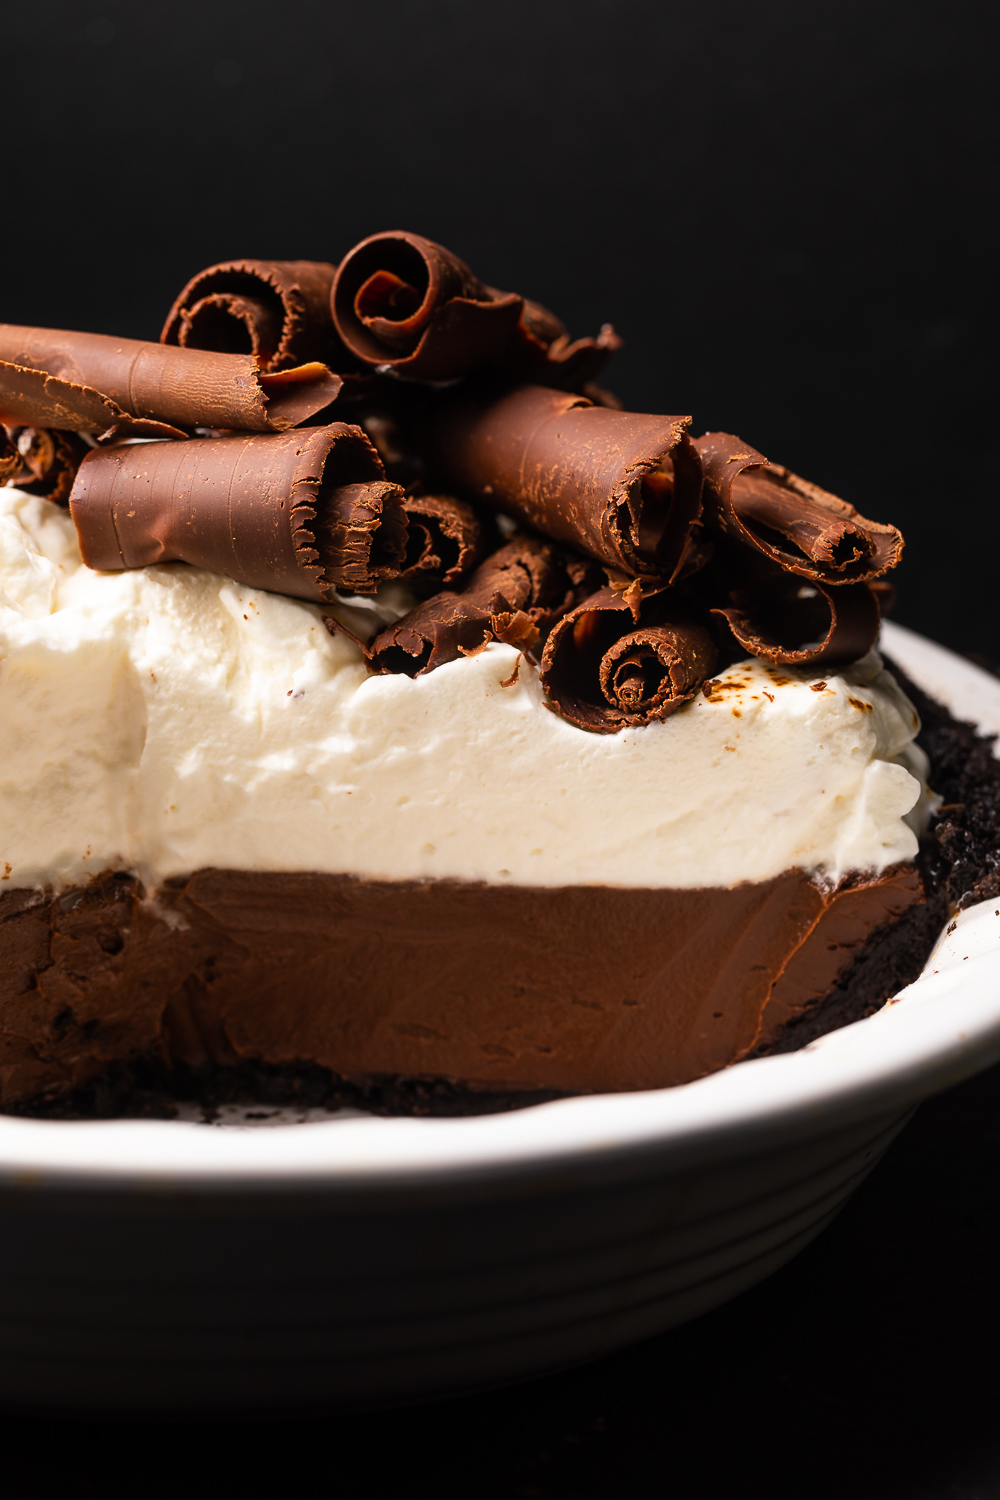 This over-the-top Espresso Chocolate Pudding Pie is a chocolate lovers dream come true! Featuring a chocolate cookie crust, silky smooth espresso chocolate pudding, and a luscious layer of freshly whipped cream, this recipe is always a crowd-pleaser! Top with chocolate curls for a show stopping presentation!